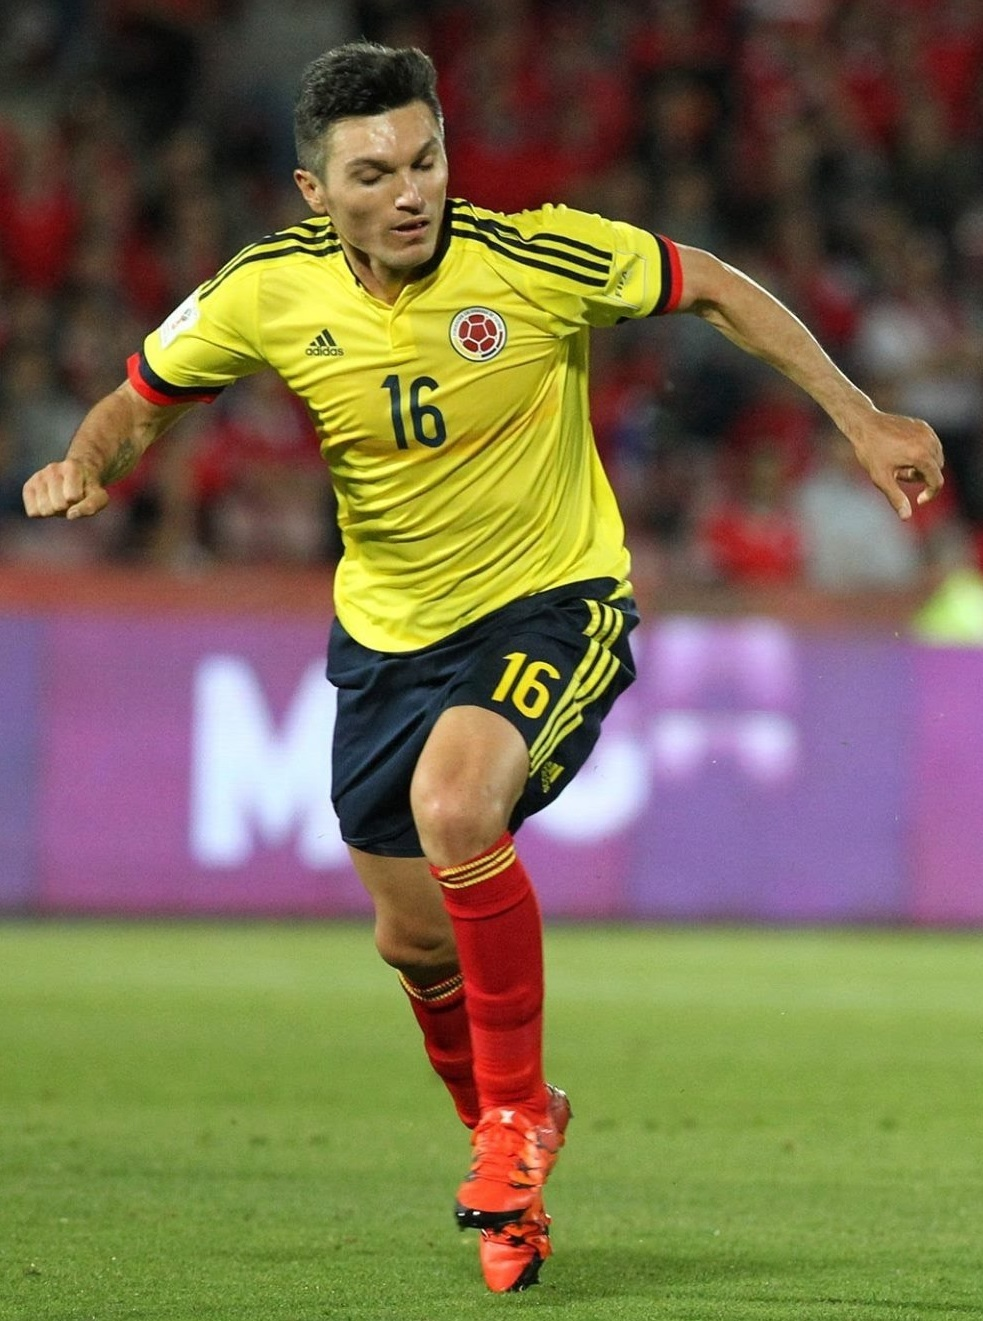 Colombia-2015-adidas-home-kit-yellow-navy-red.jpg